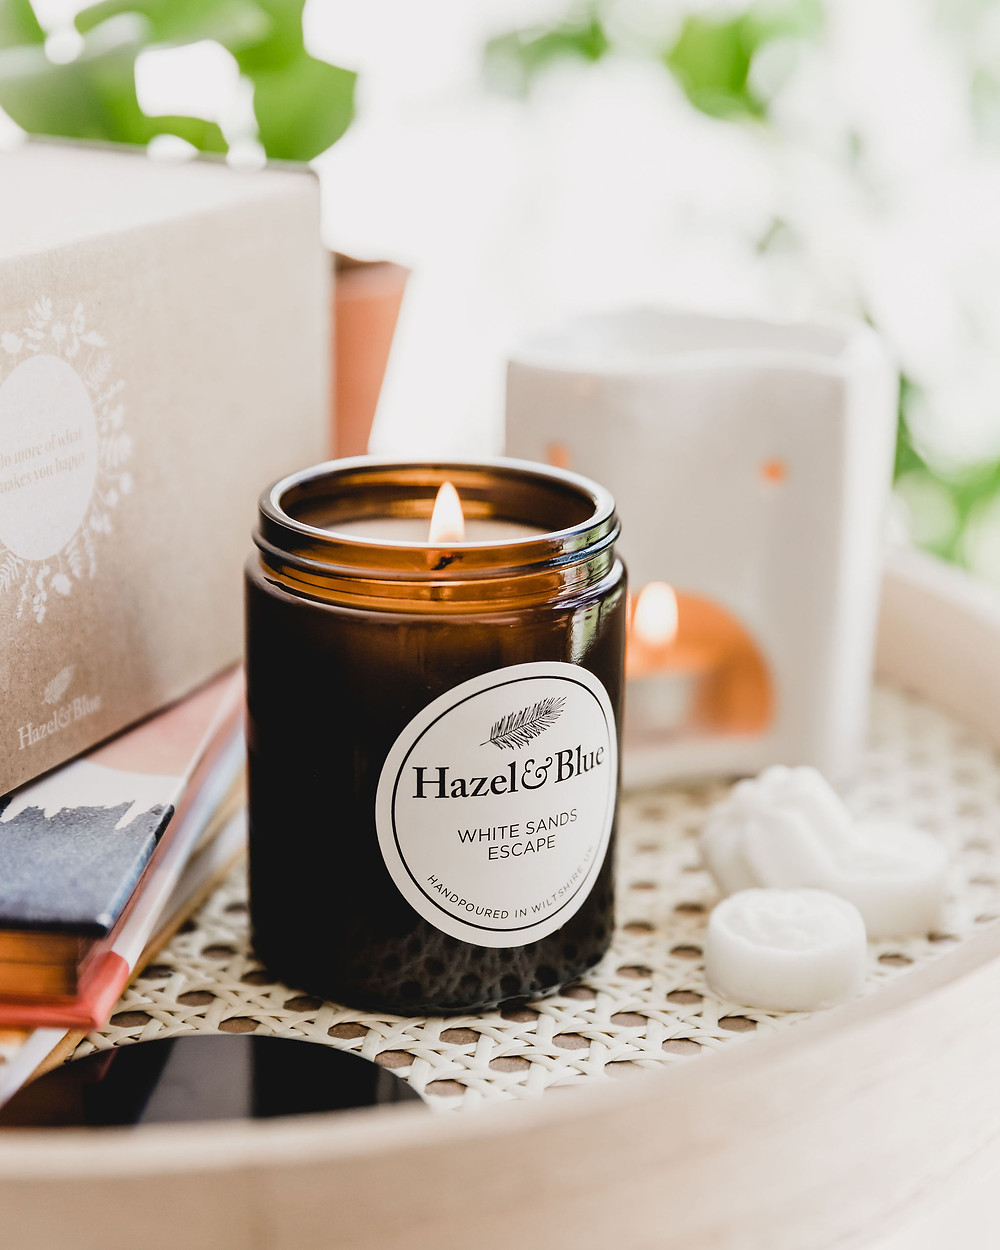 Summer beach soy candle